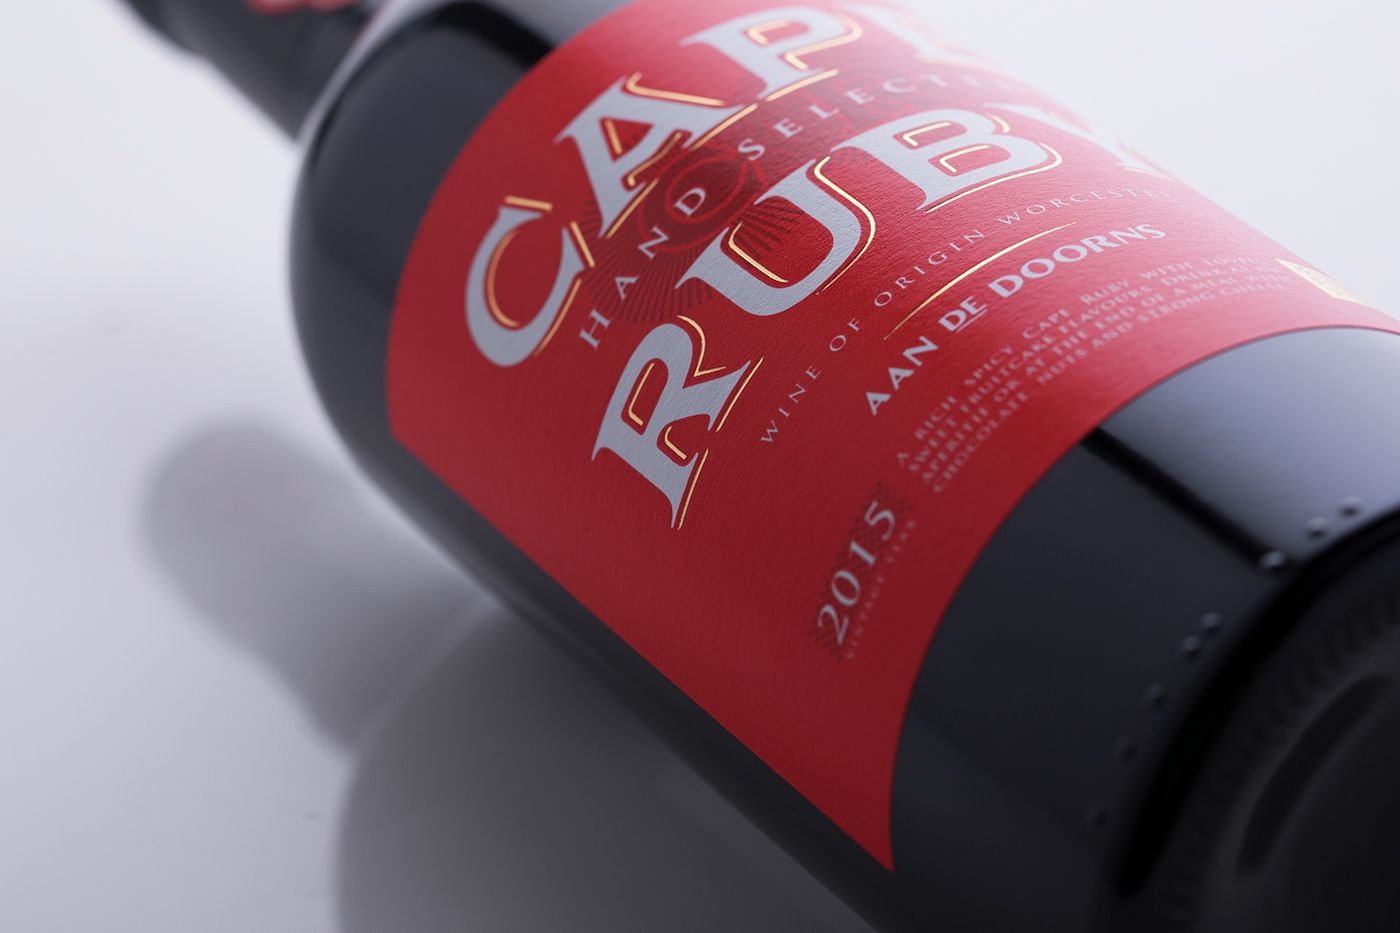 Check Out This Behance Project Cape Ruby Port Https Www Behance Net Gallery 60736831 Cape Ruby Port Wine Brands Label Design Packaging Design